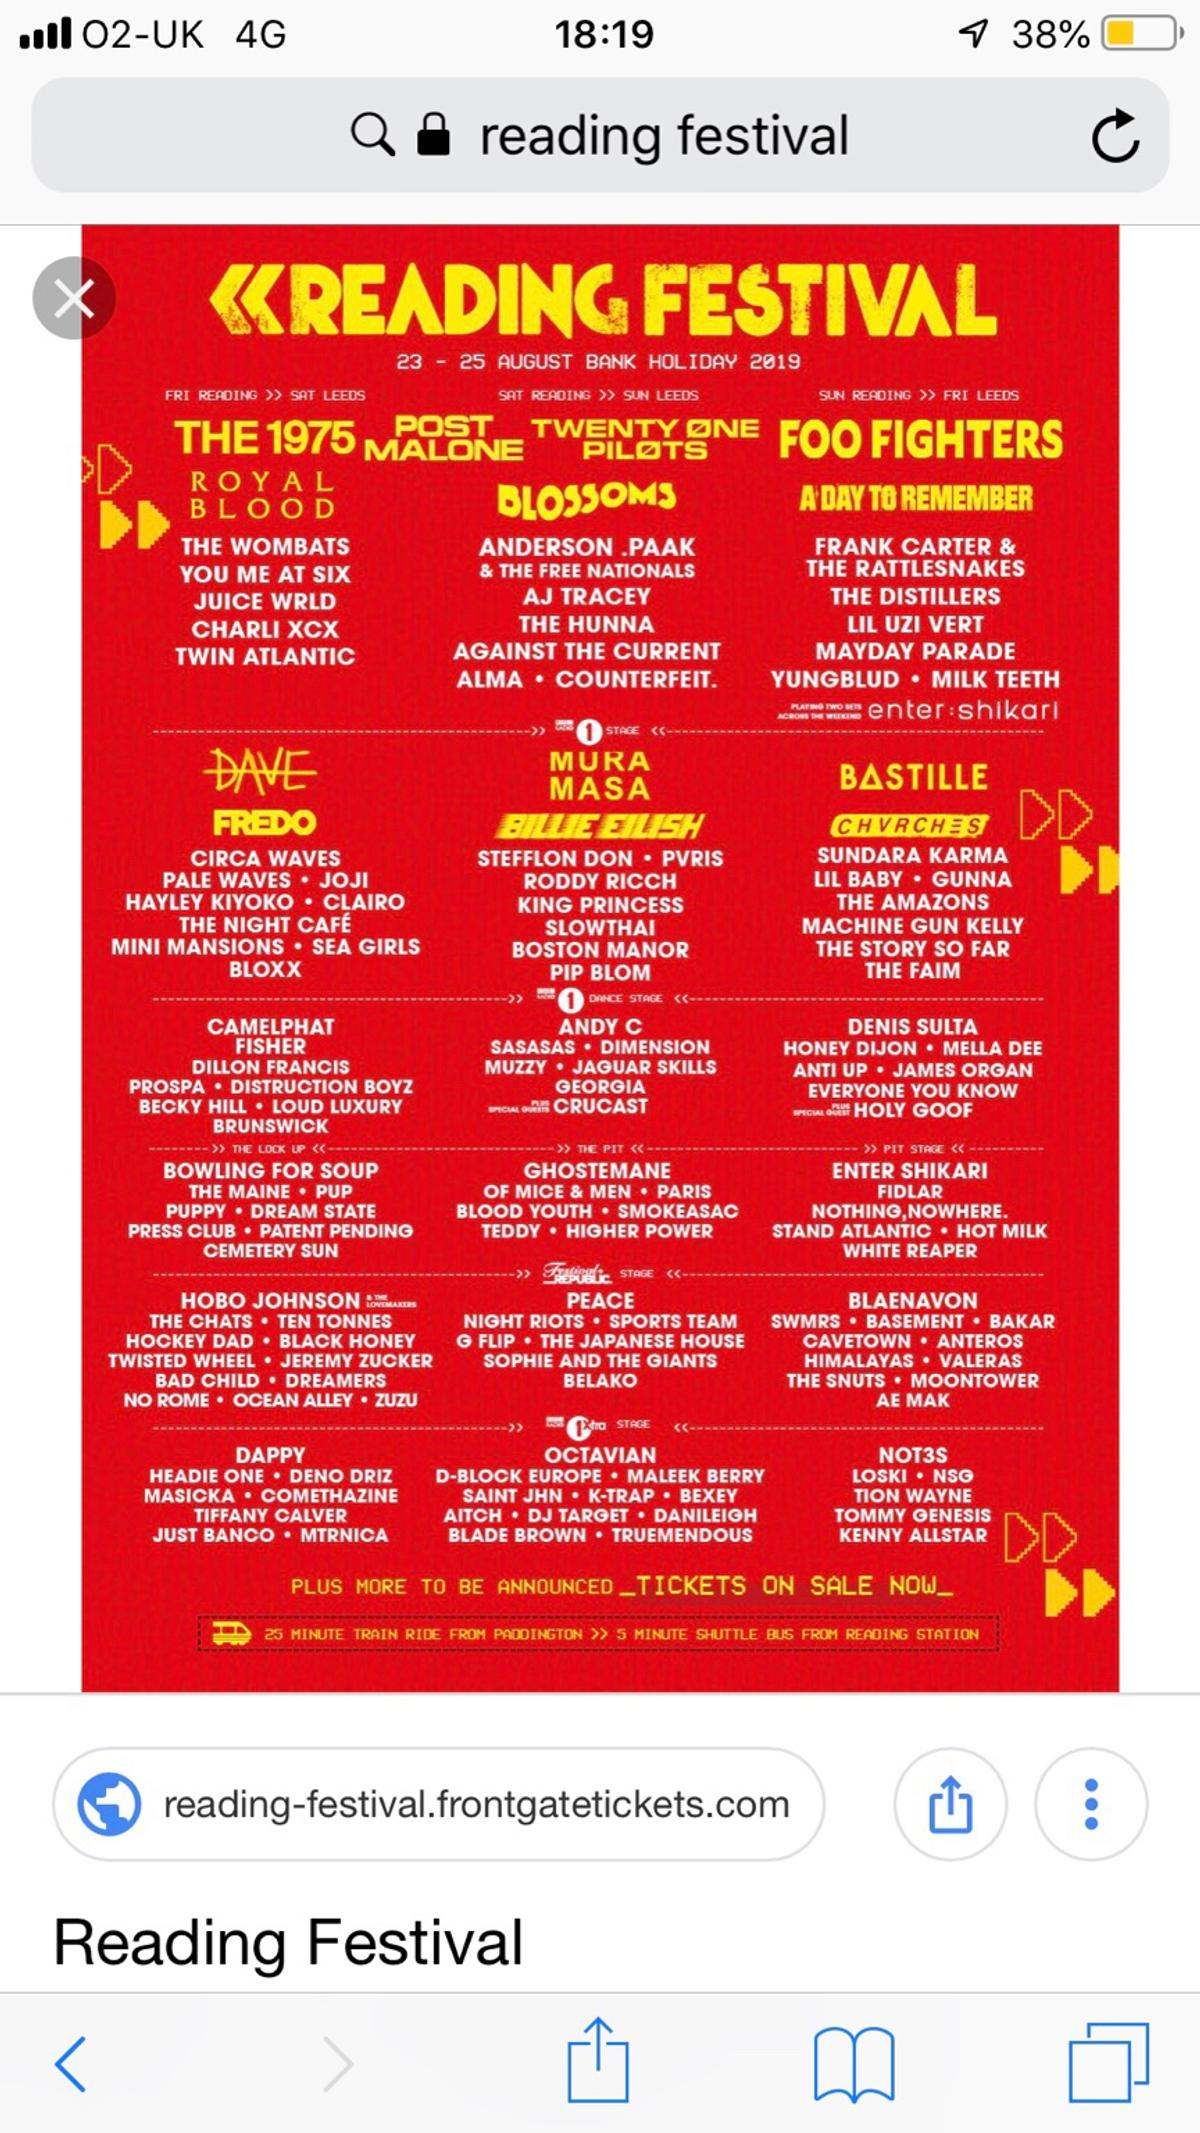 Discounted Reading Festival Tickets!!